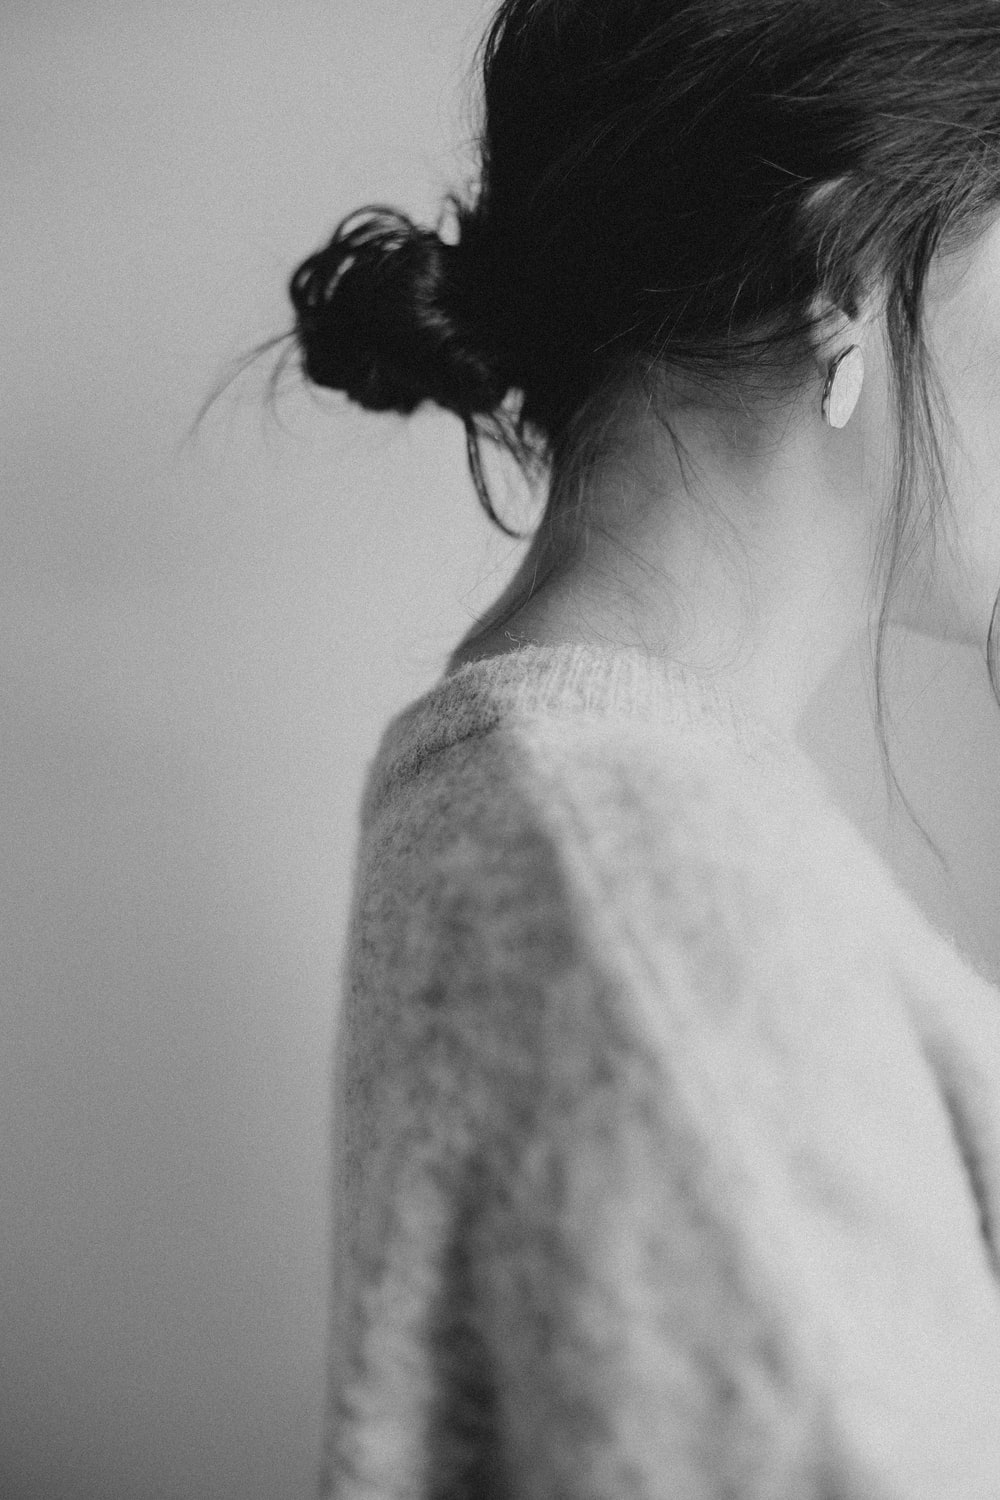 tied haired woman wearing top photo – Free Neck Image on Unsplash